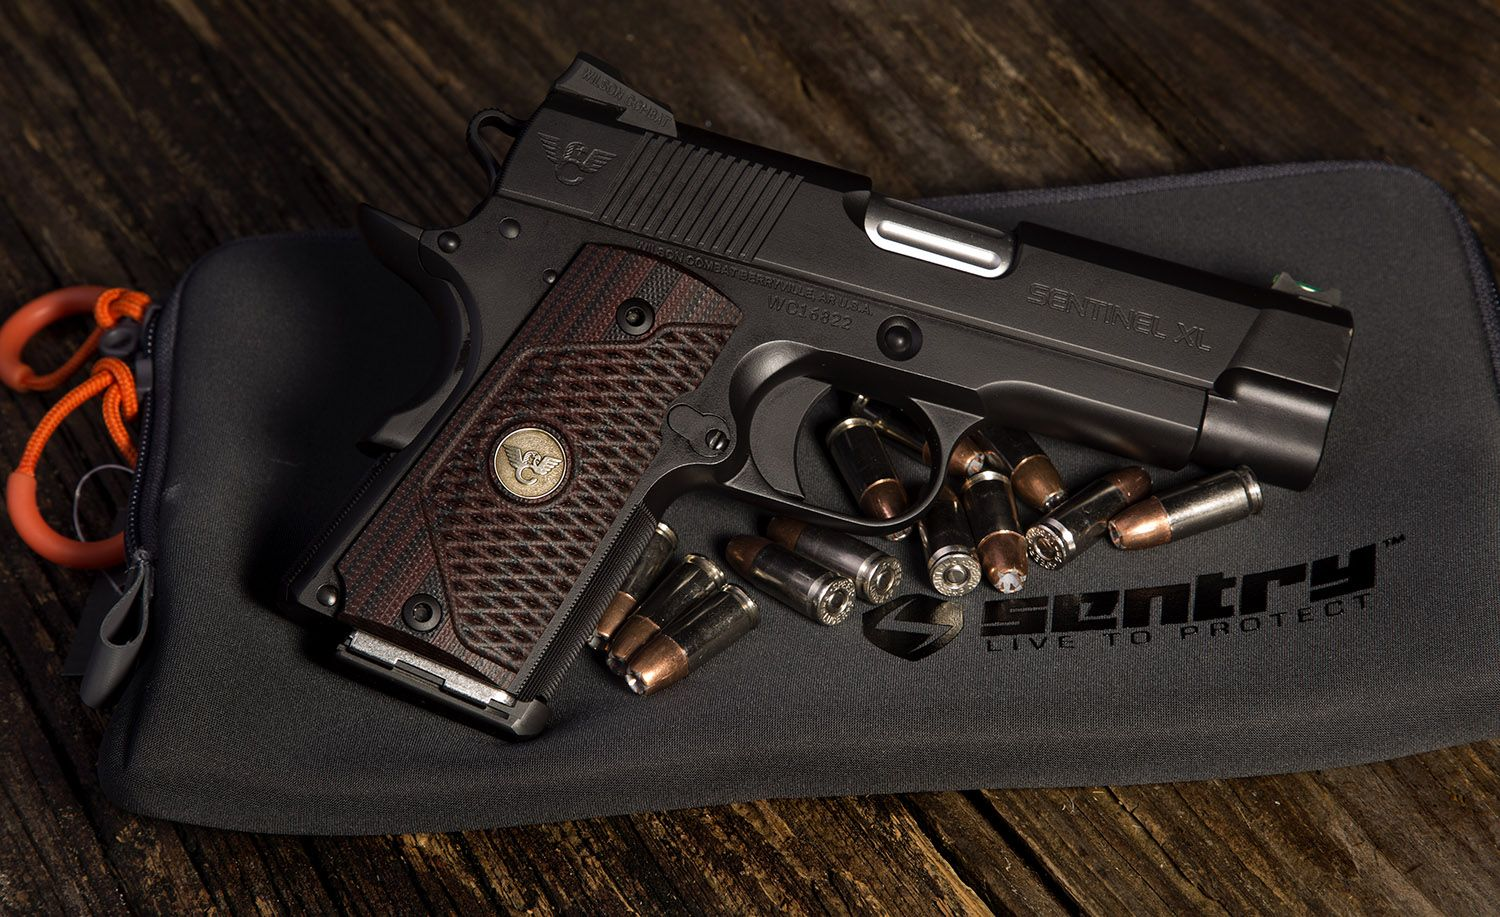 VZ Grips and Wilson Combat have joined forces on this Sentinel XL